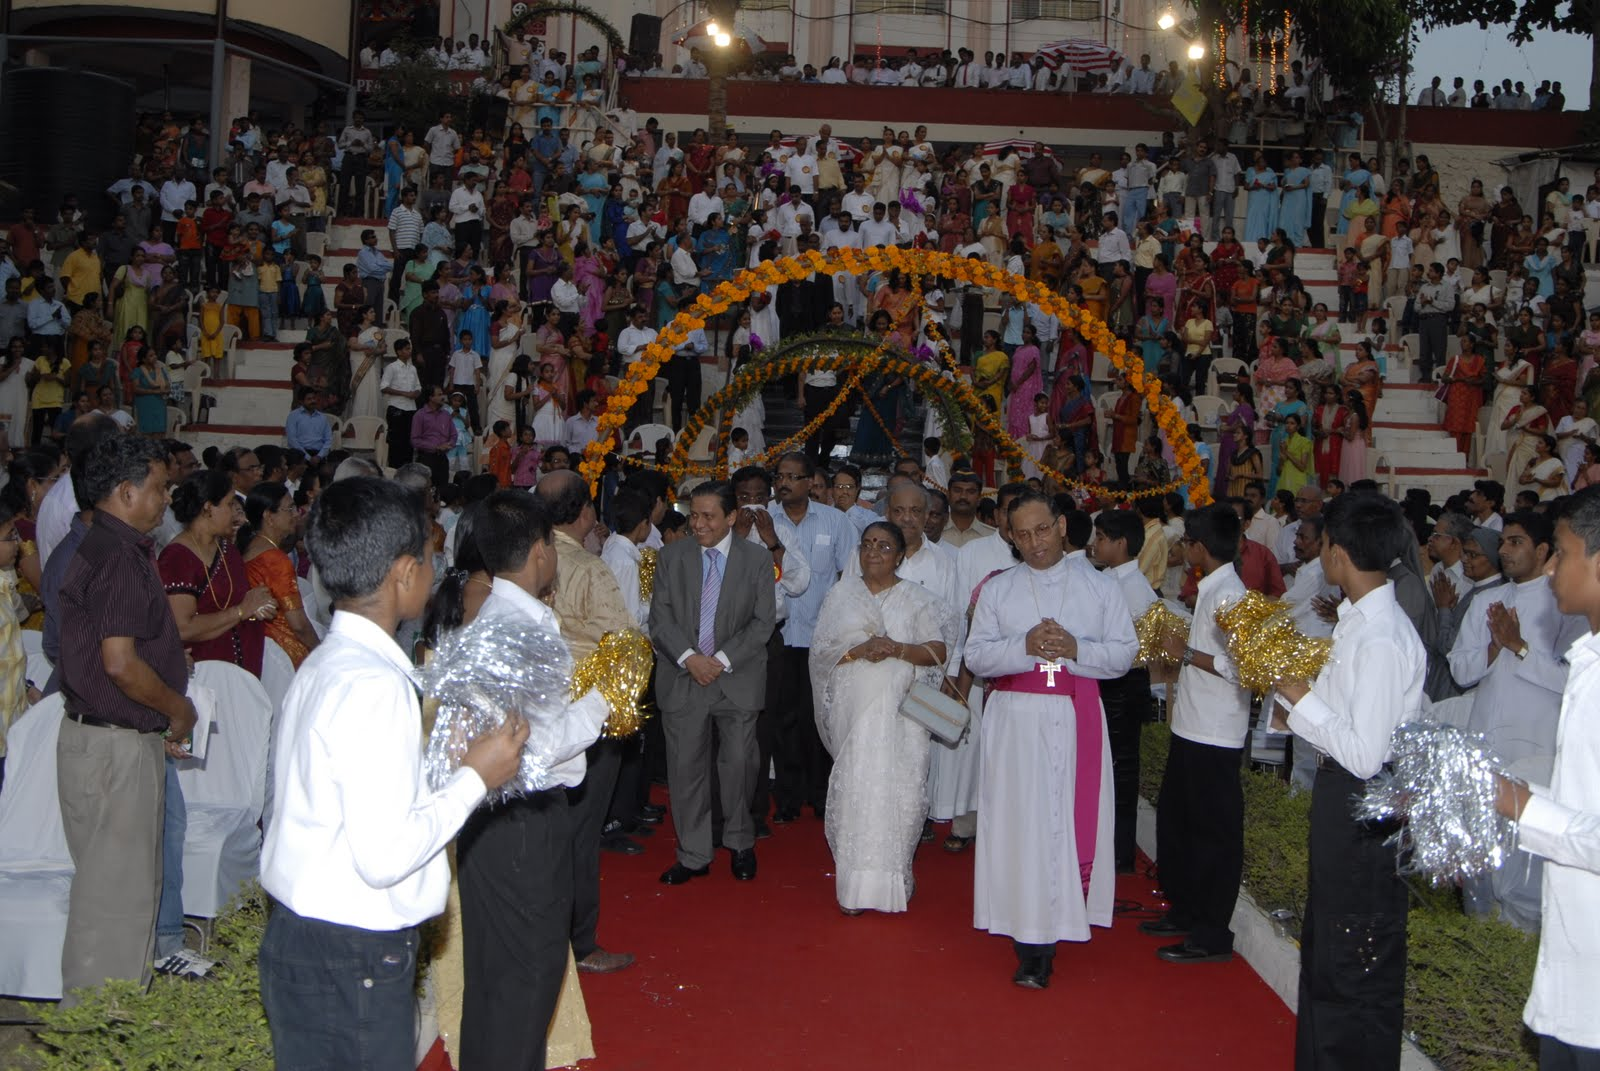 Diocese of Kalyan s of Events